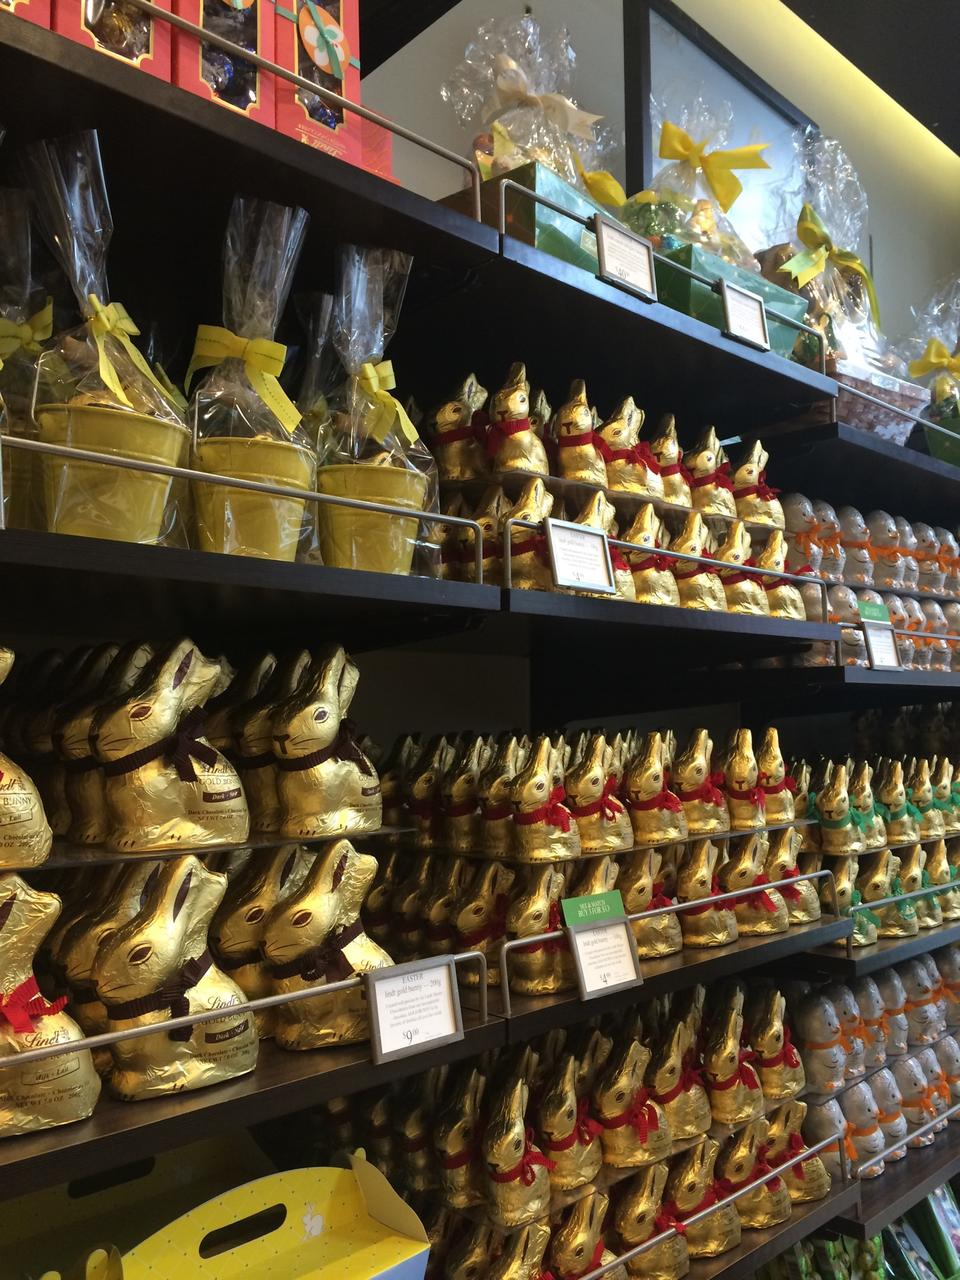 Lindt Chocolate's Easter display with chocolate rabbits in gold foil and bows wrapped around their necks. MEP designed by 2L Engineering.